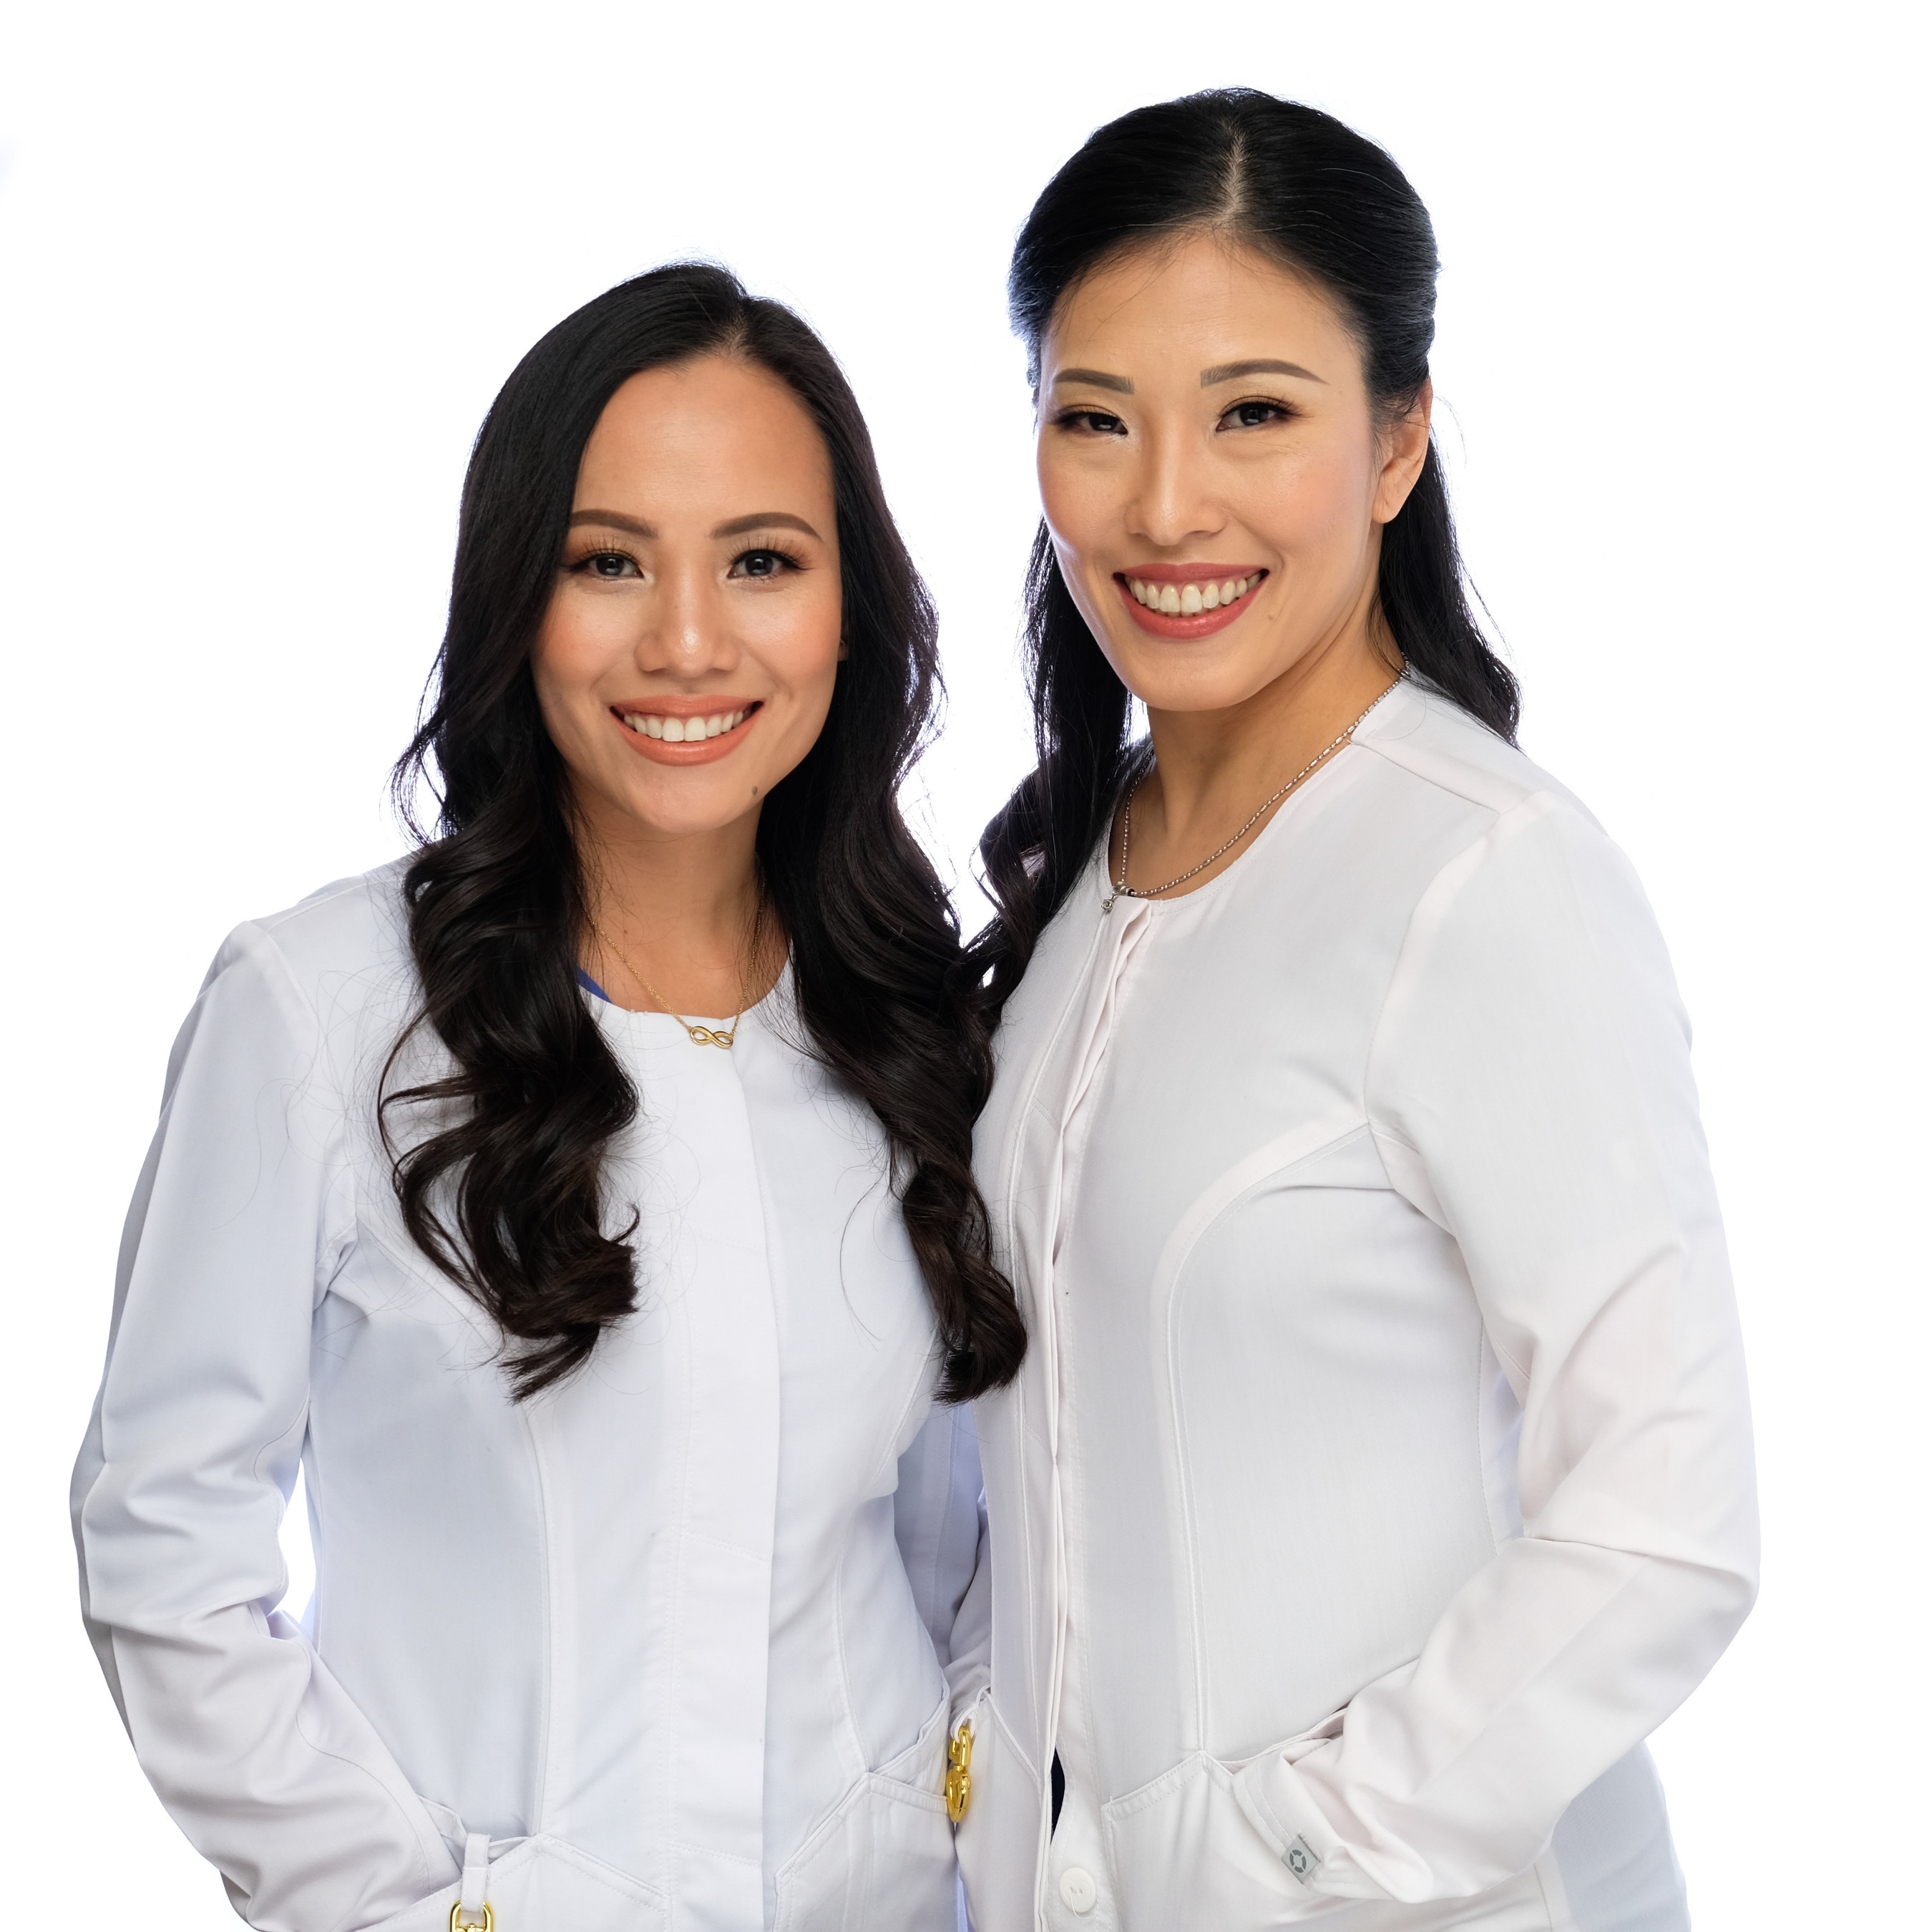 A Family Dentistry Announces The Opening Of Their Third Location In Sorrento Valley While Providing Free Dental Care Service Through Give Back A Smile Program